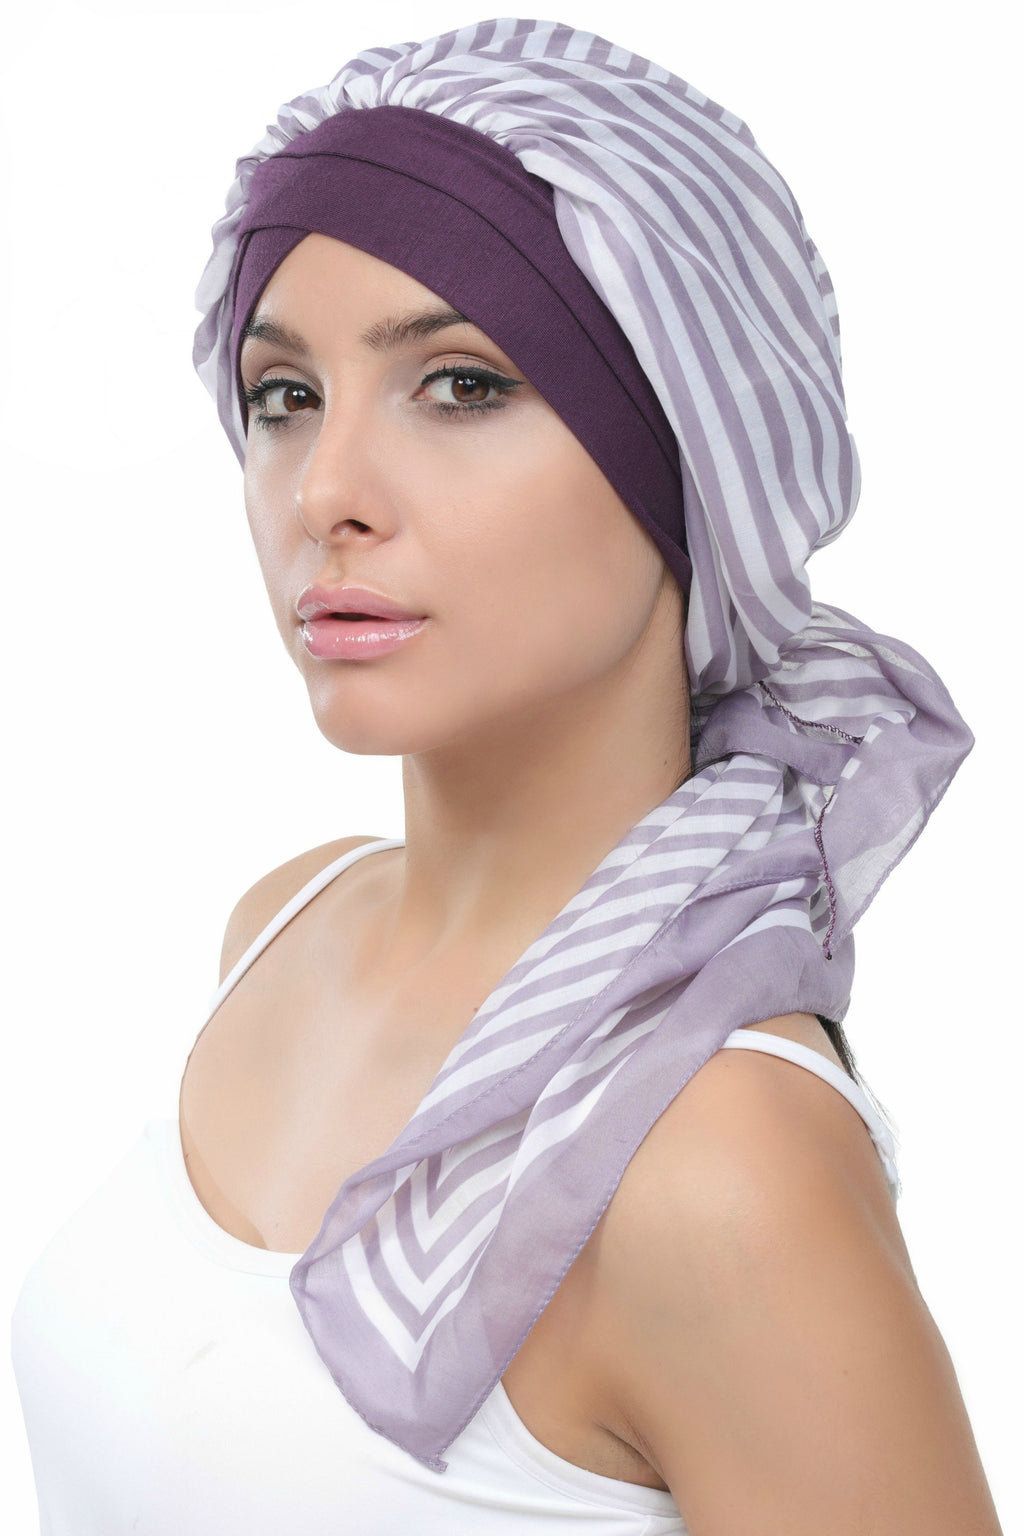 Deresina W cap with attached chemo headscarf style40 mulberry printed